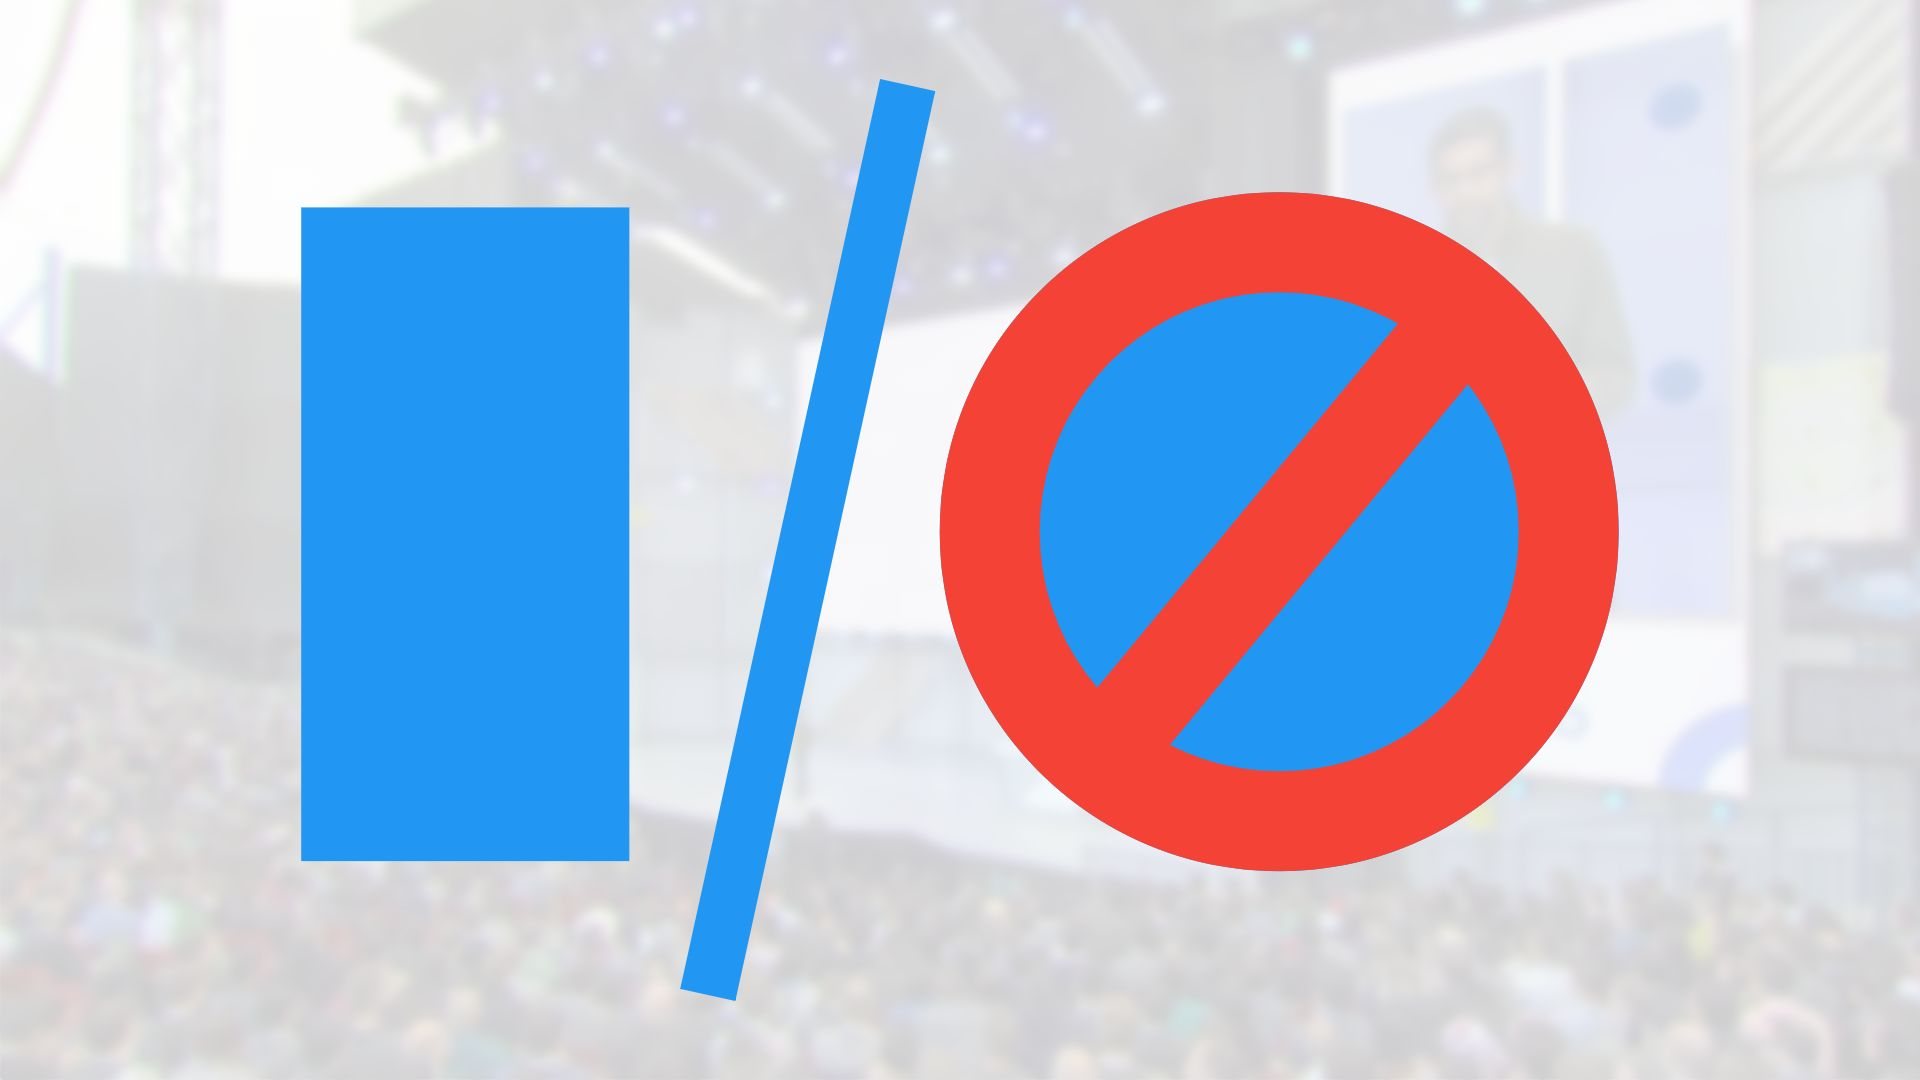 It seems even virtual events are not immune as Google fully cancels I/O developer conference